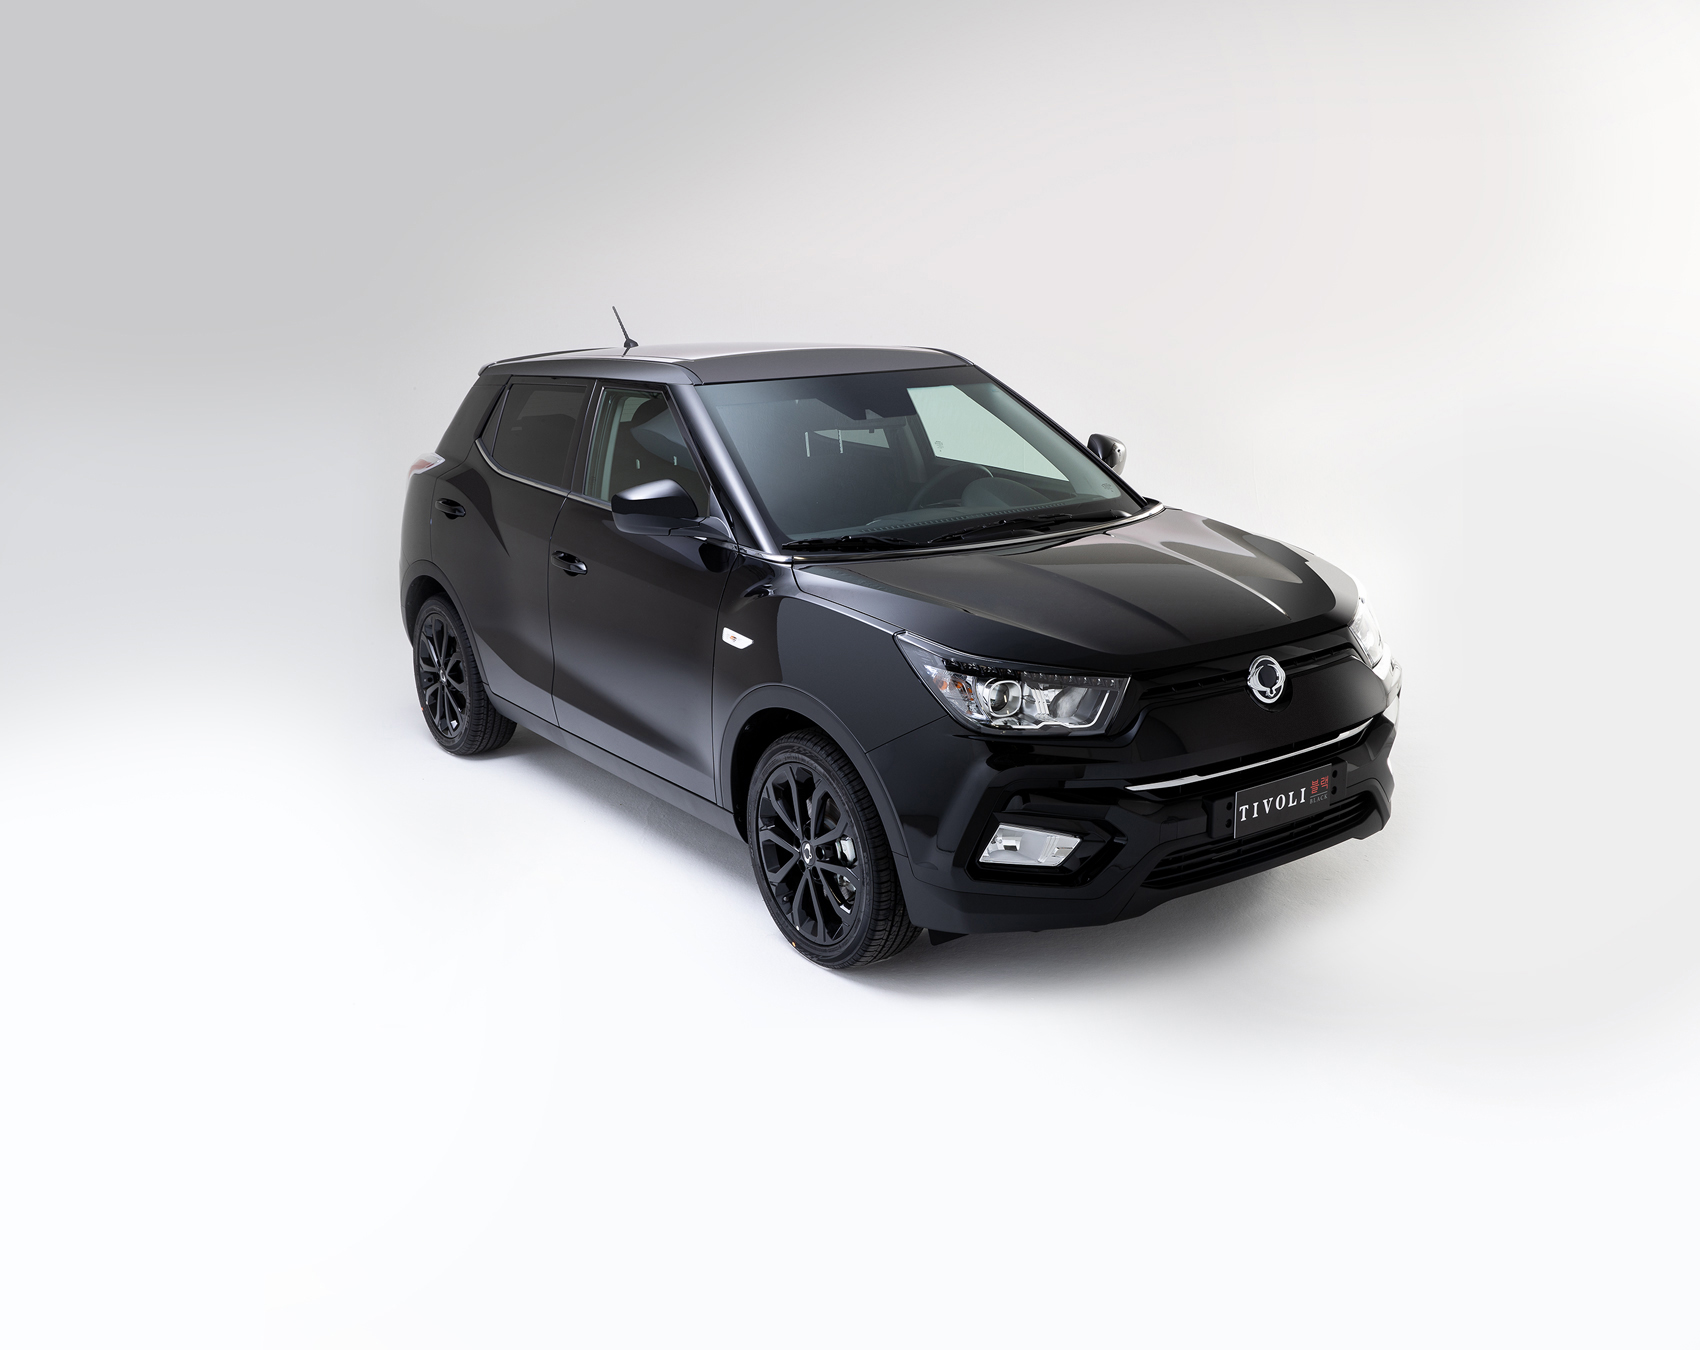 SsangYong Tivoli Black Edition